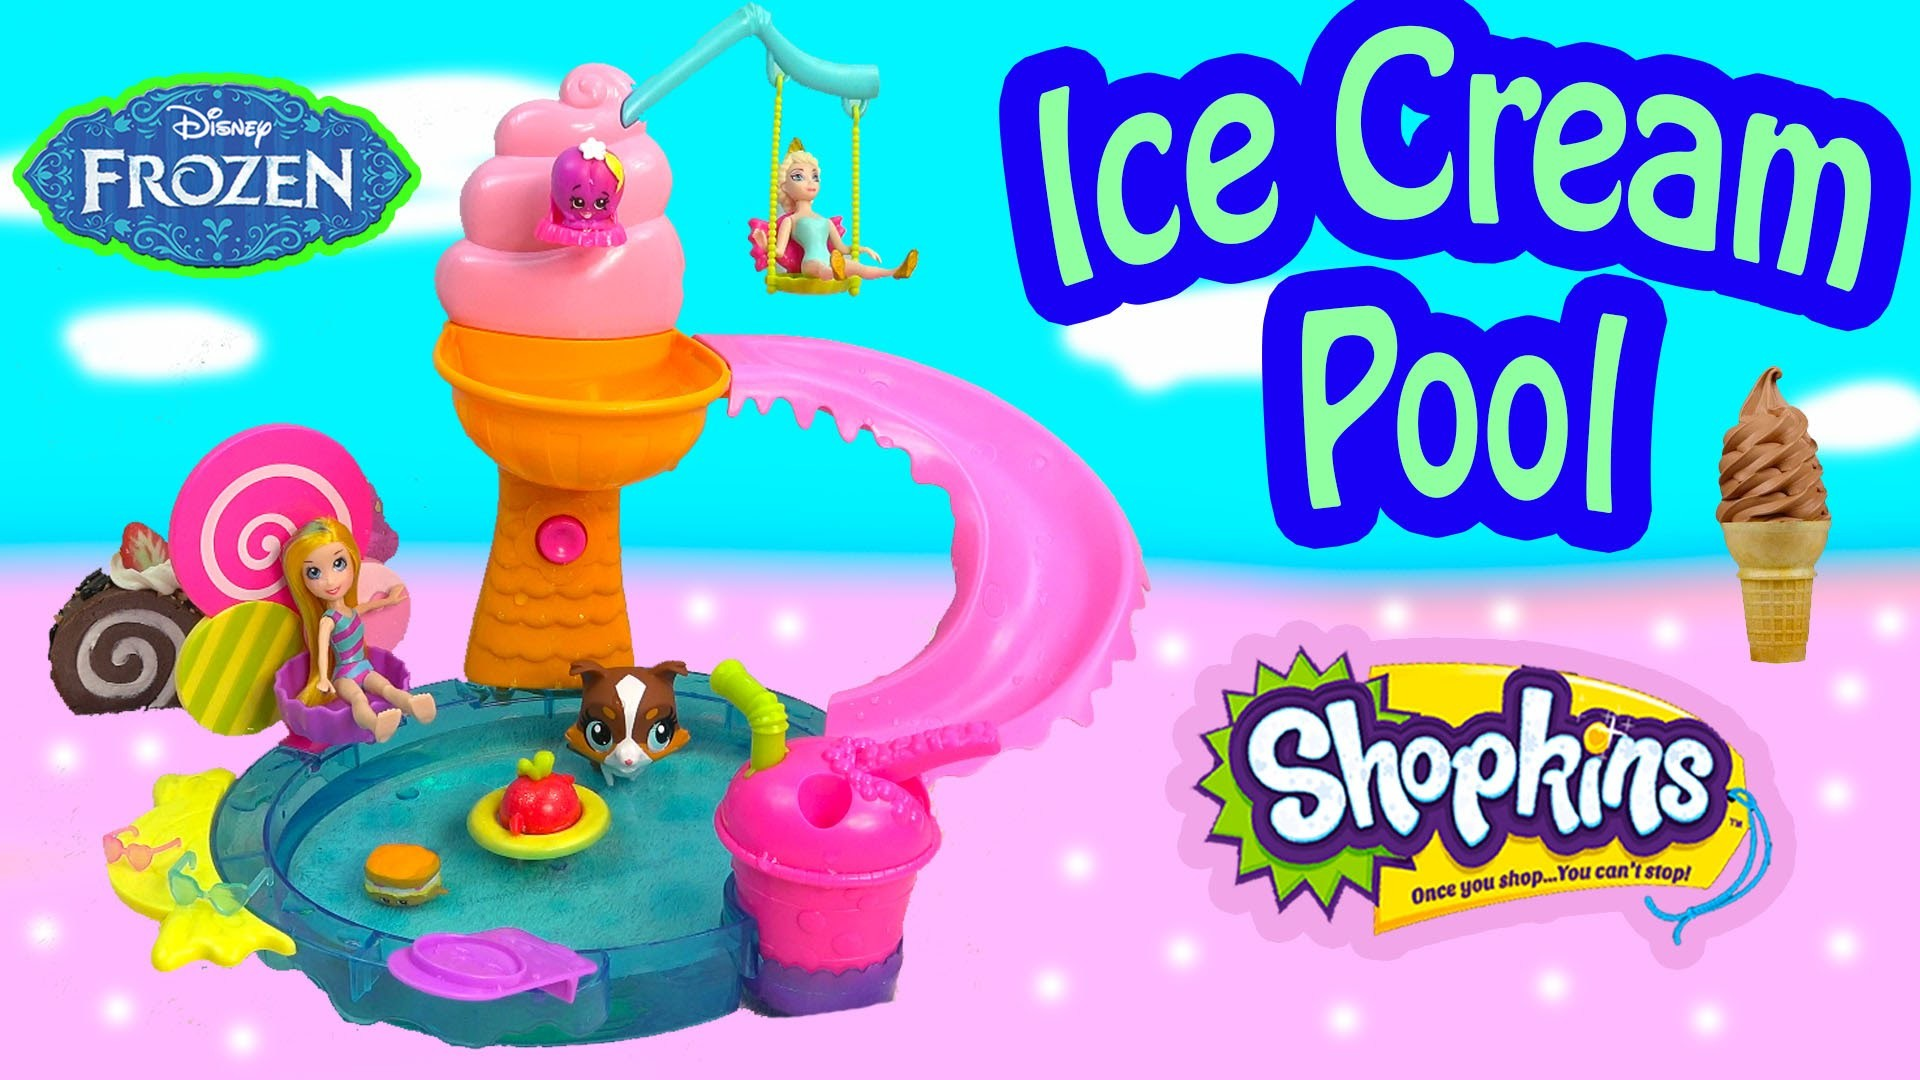 Polly Pocket Color Changer Doll Water Pool Playset Queen Elsa Disney Frozen Shopkins Season 3 Toy